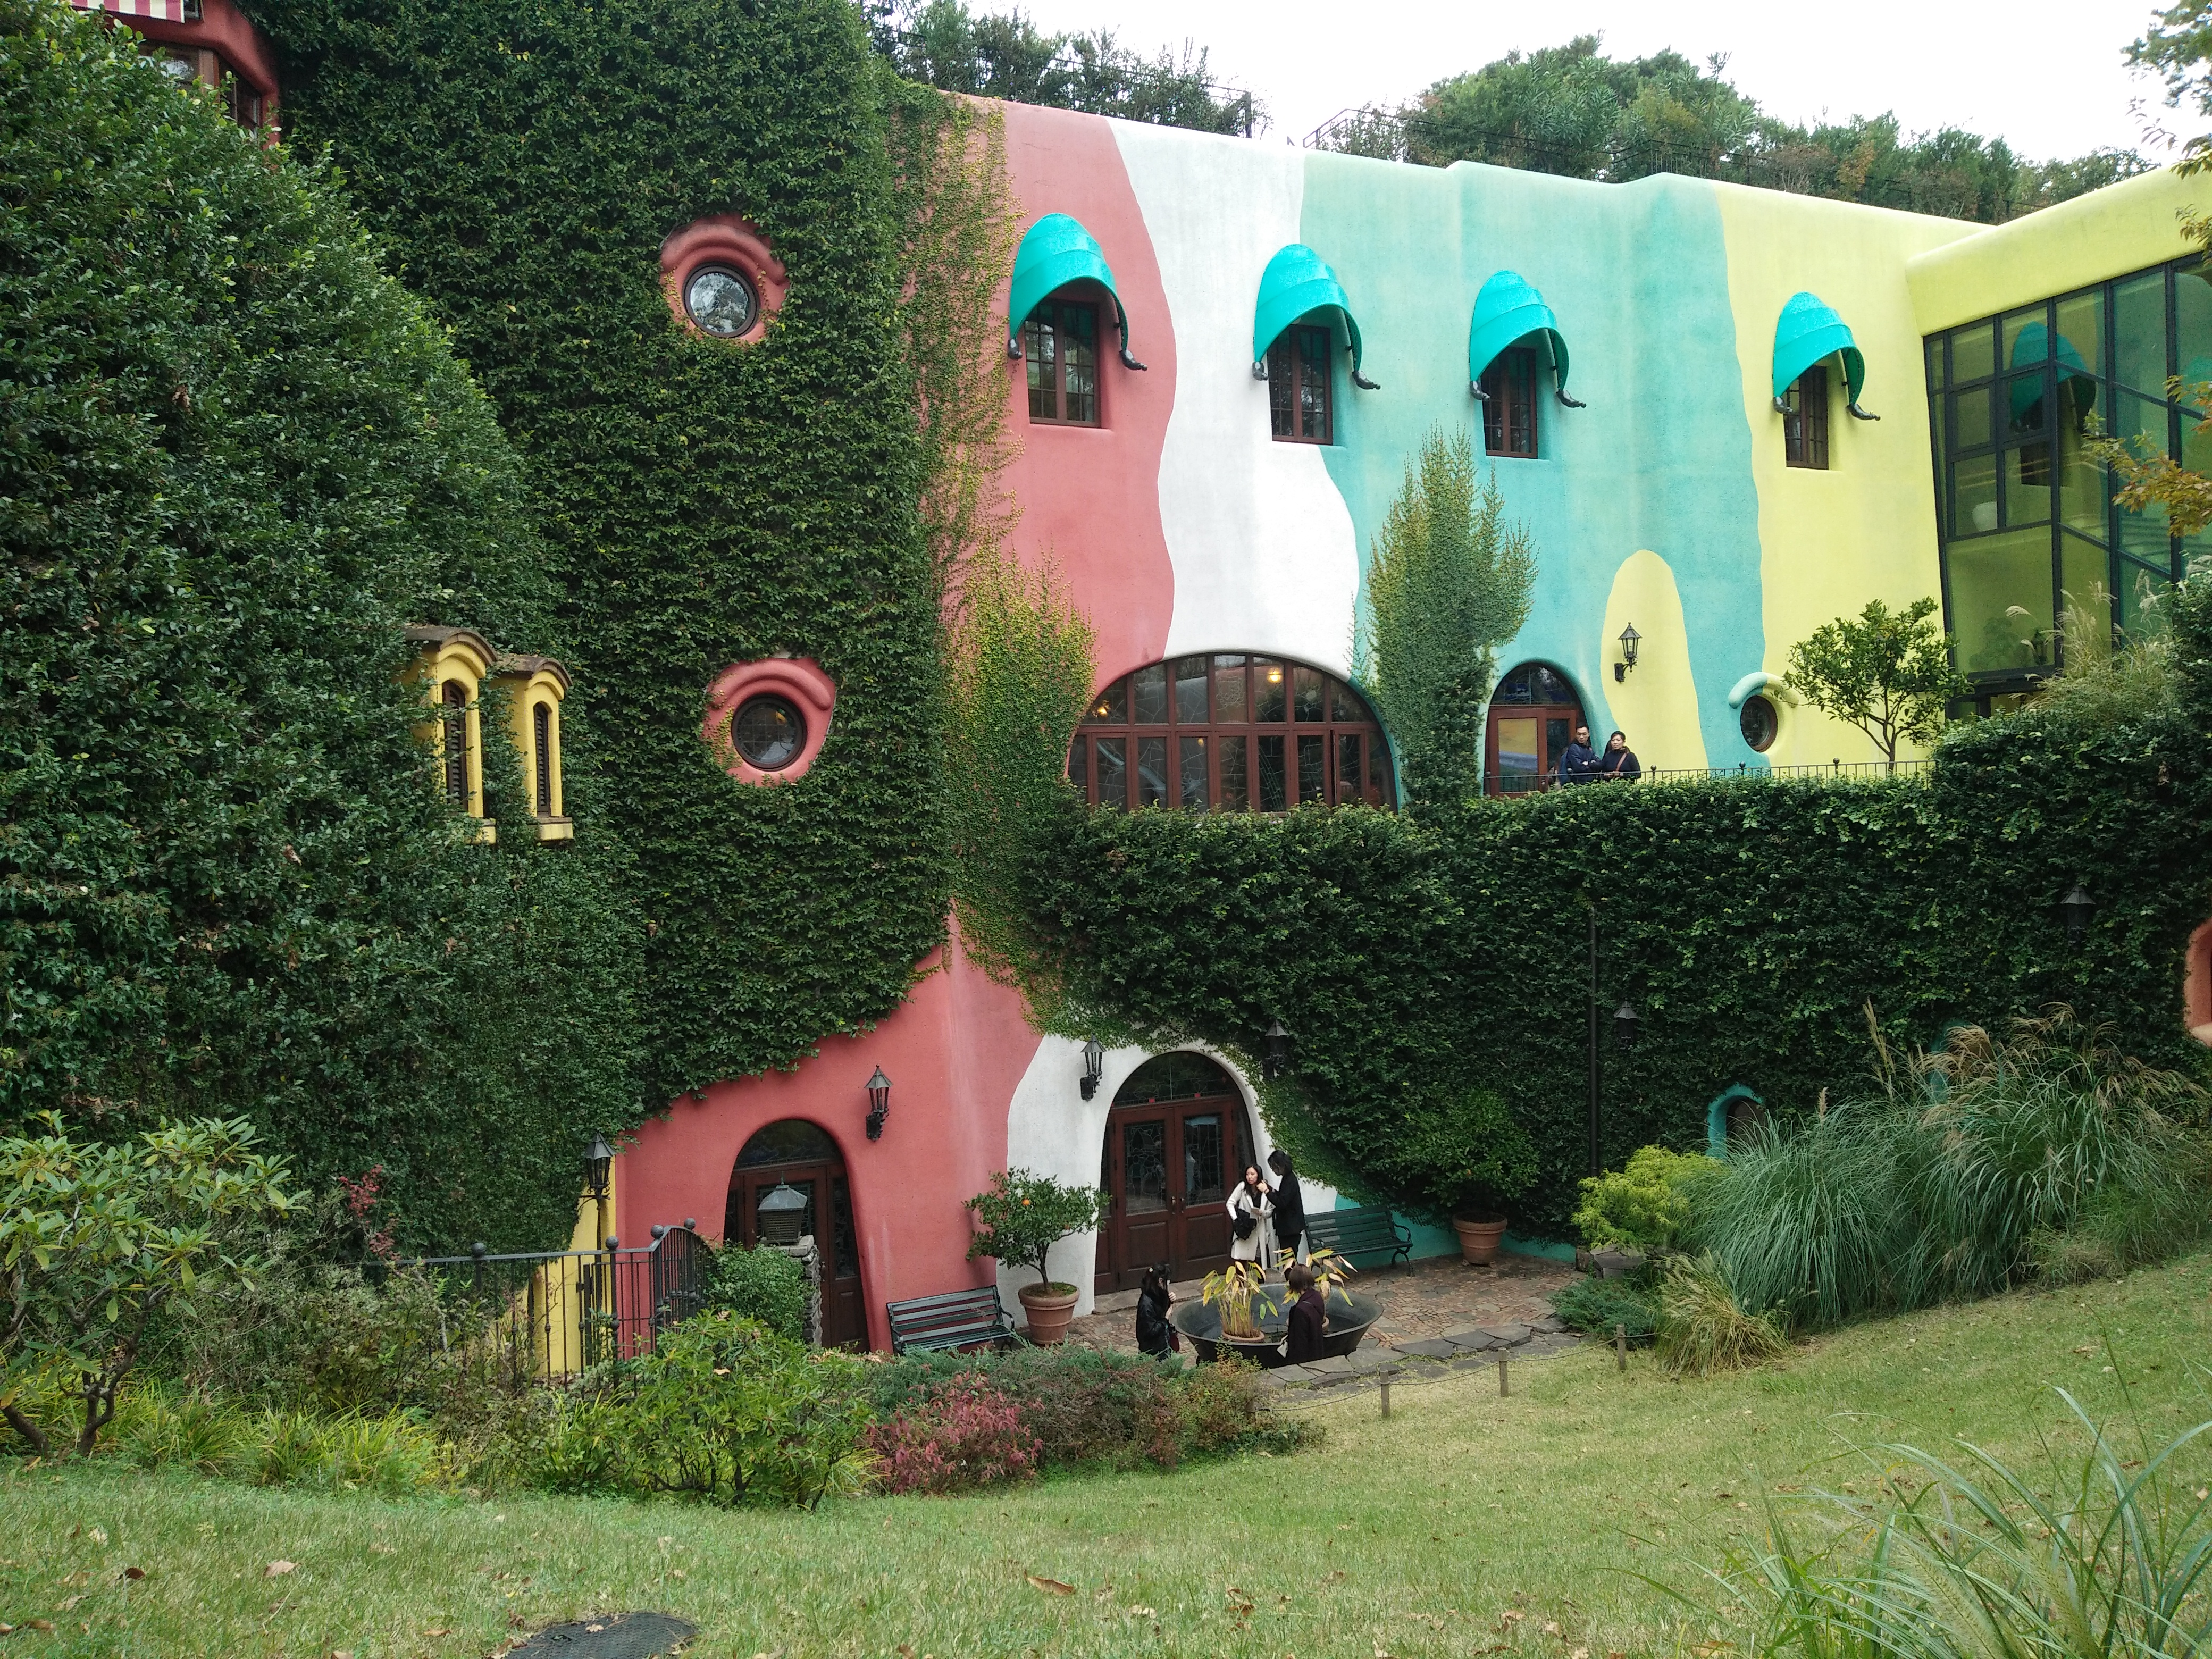 Picture of the quirky museum building painted in bright pink, white, green and